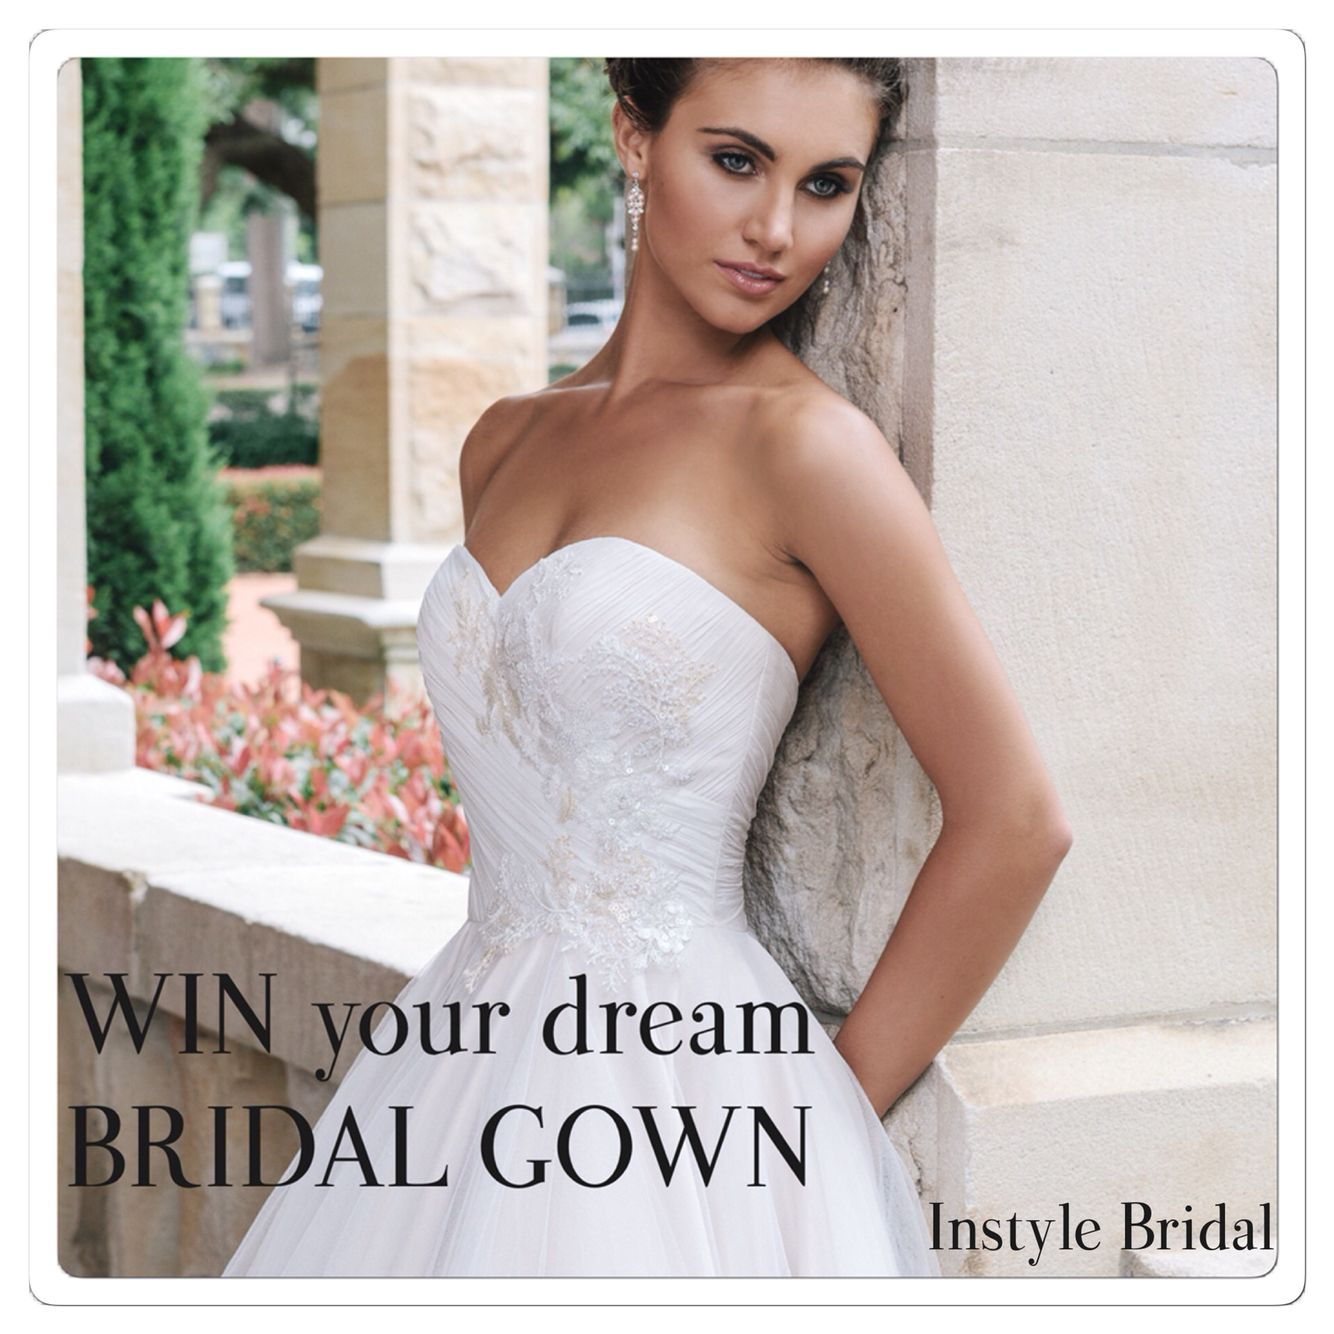 Jack Sullivan @ Instyle Bridal Win your dream Bridal Gown at Instyle ...